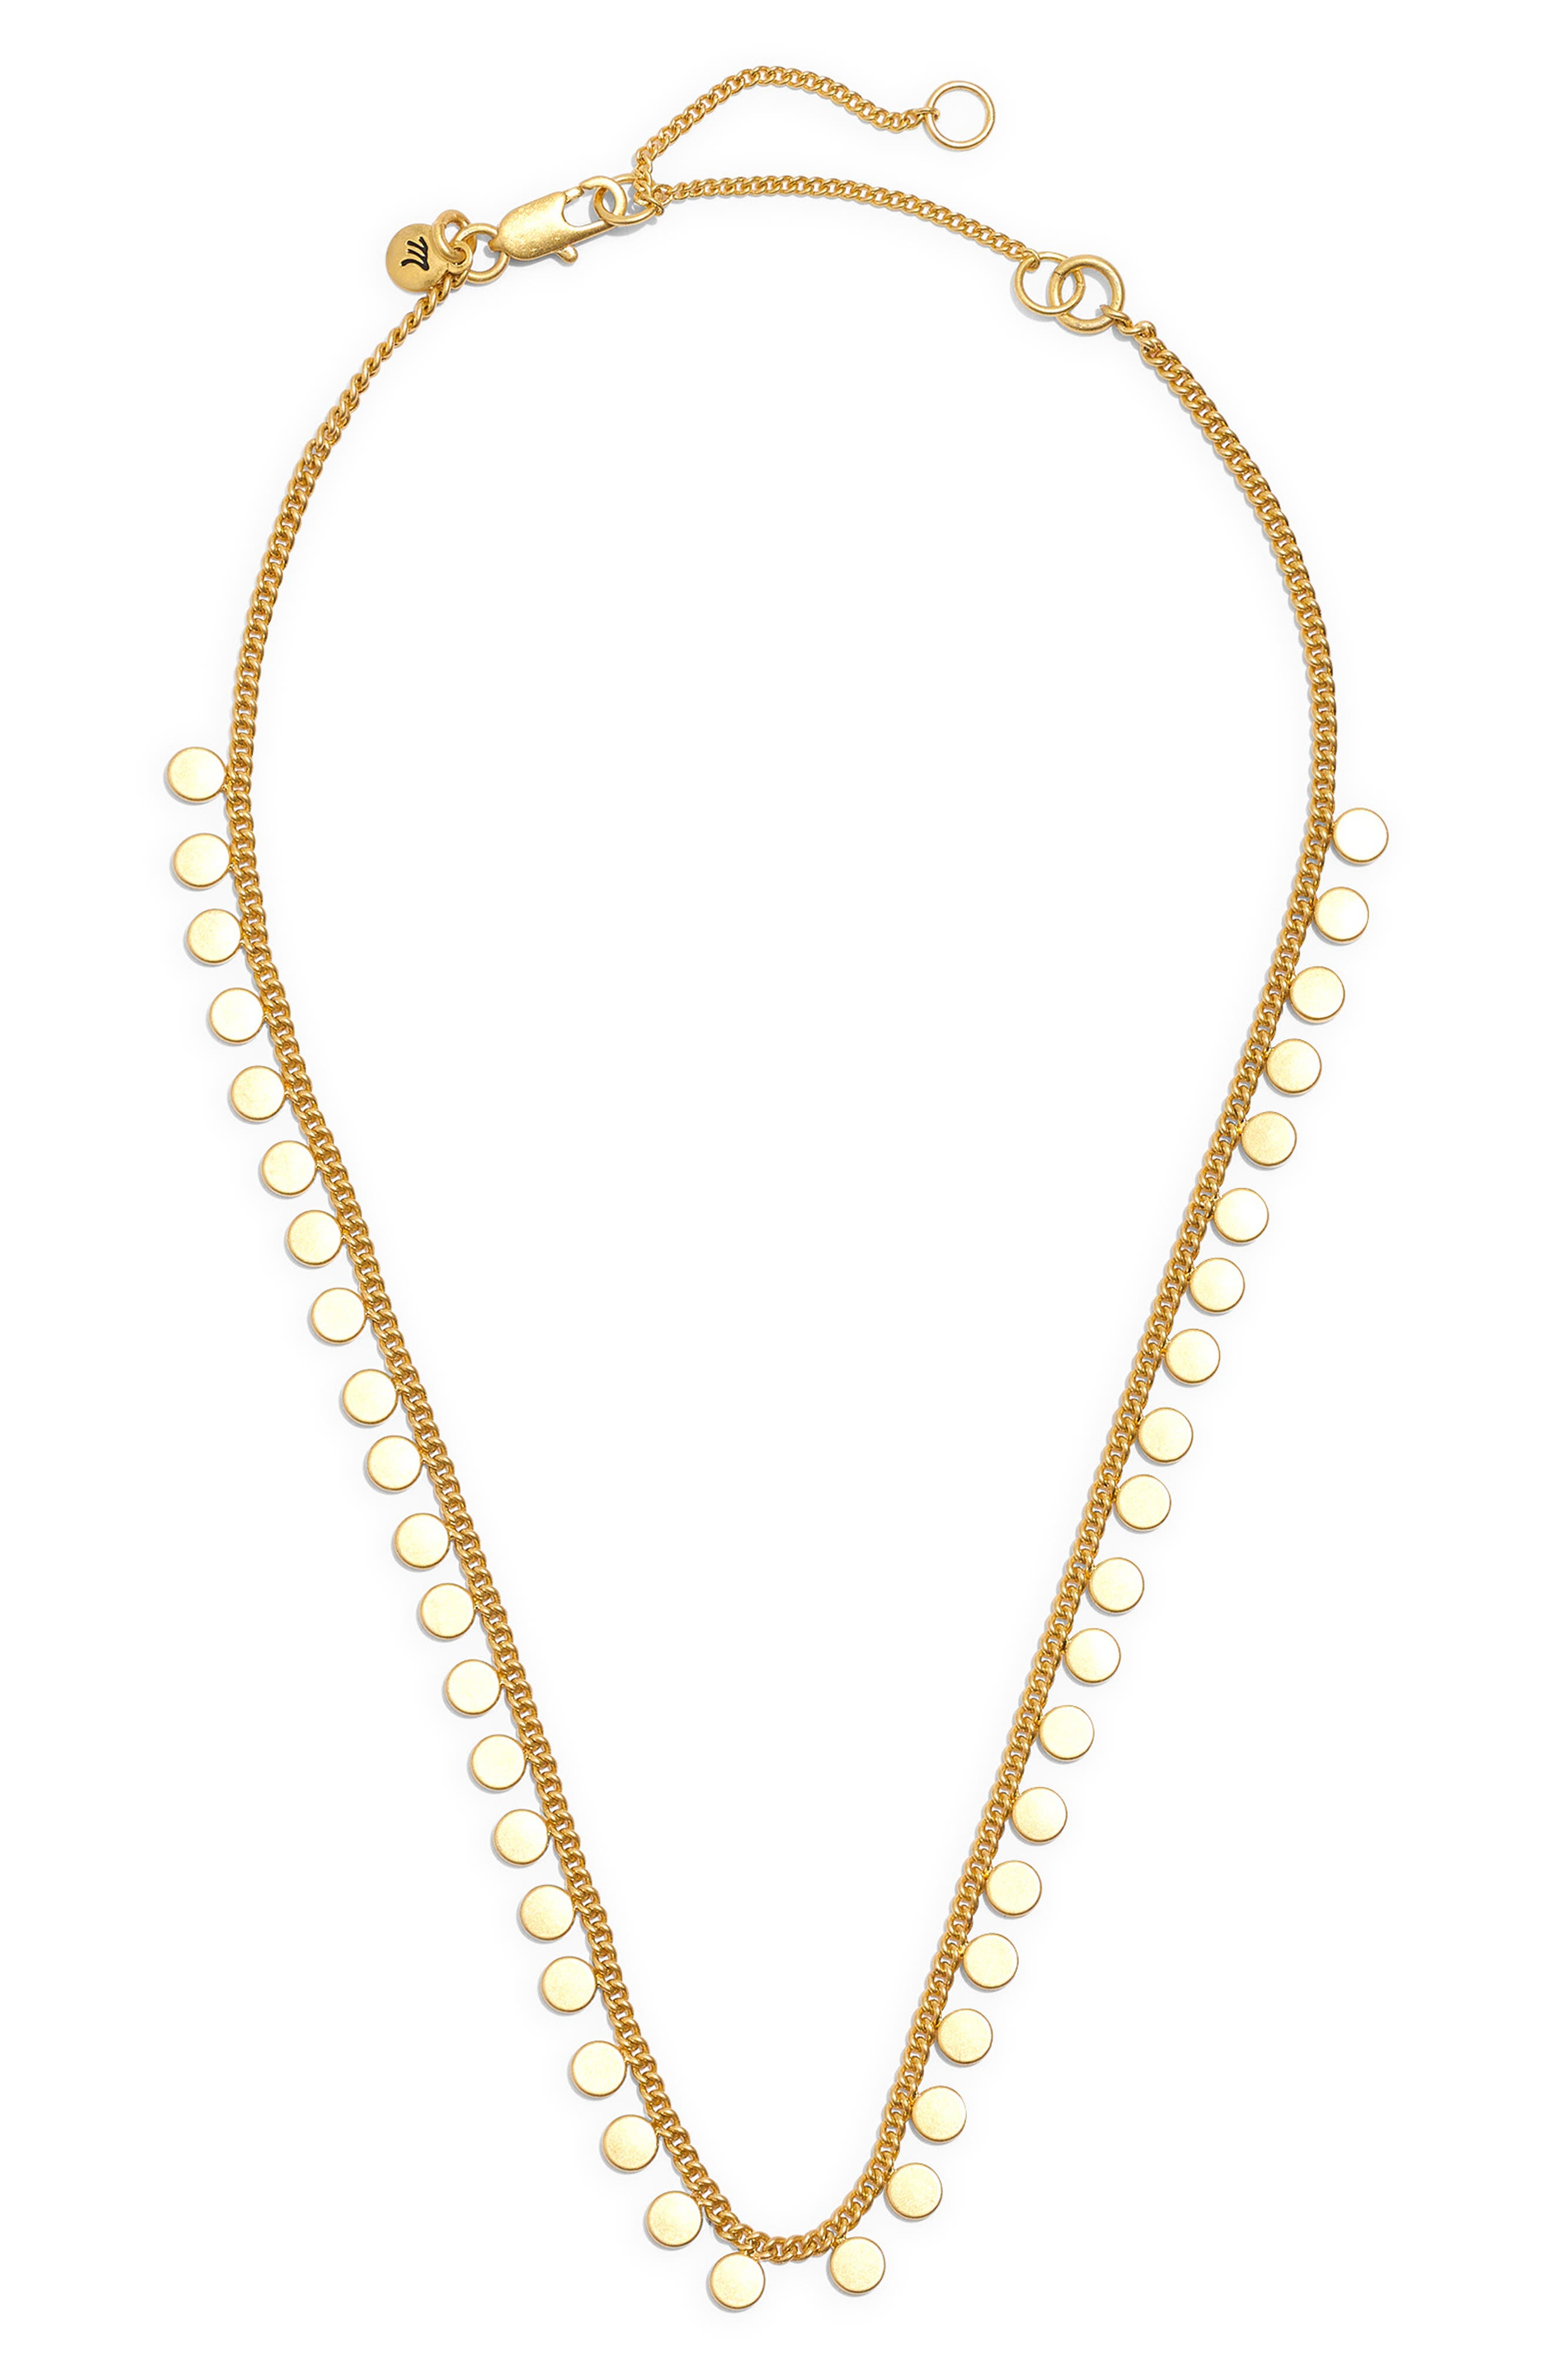 A chain necklace dotted with, well, dots is at a just-right choker length that layers well everything. Style Name: Madewell Connect-The-Dots Choker Necklace. Style Number: 5817802. Available in stores.